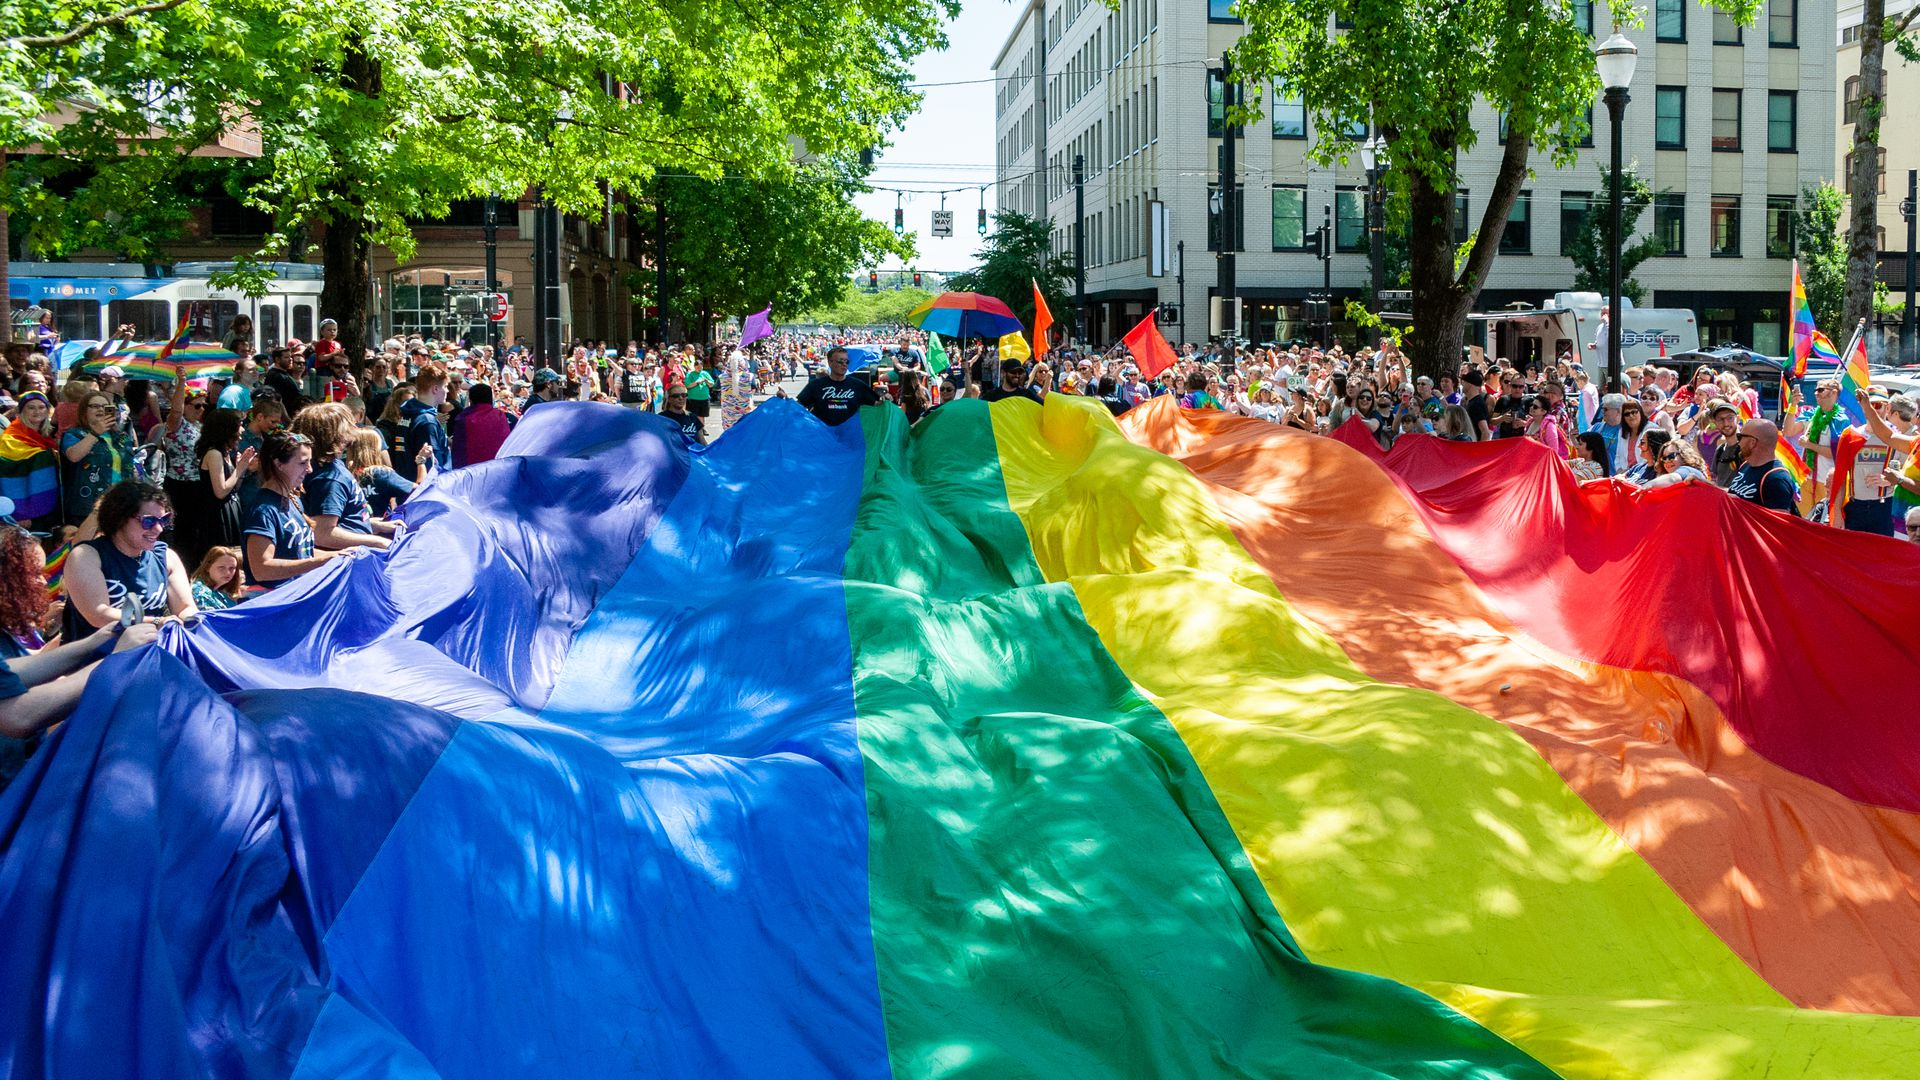 This image shows a large Pride flag being carried down a street.